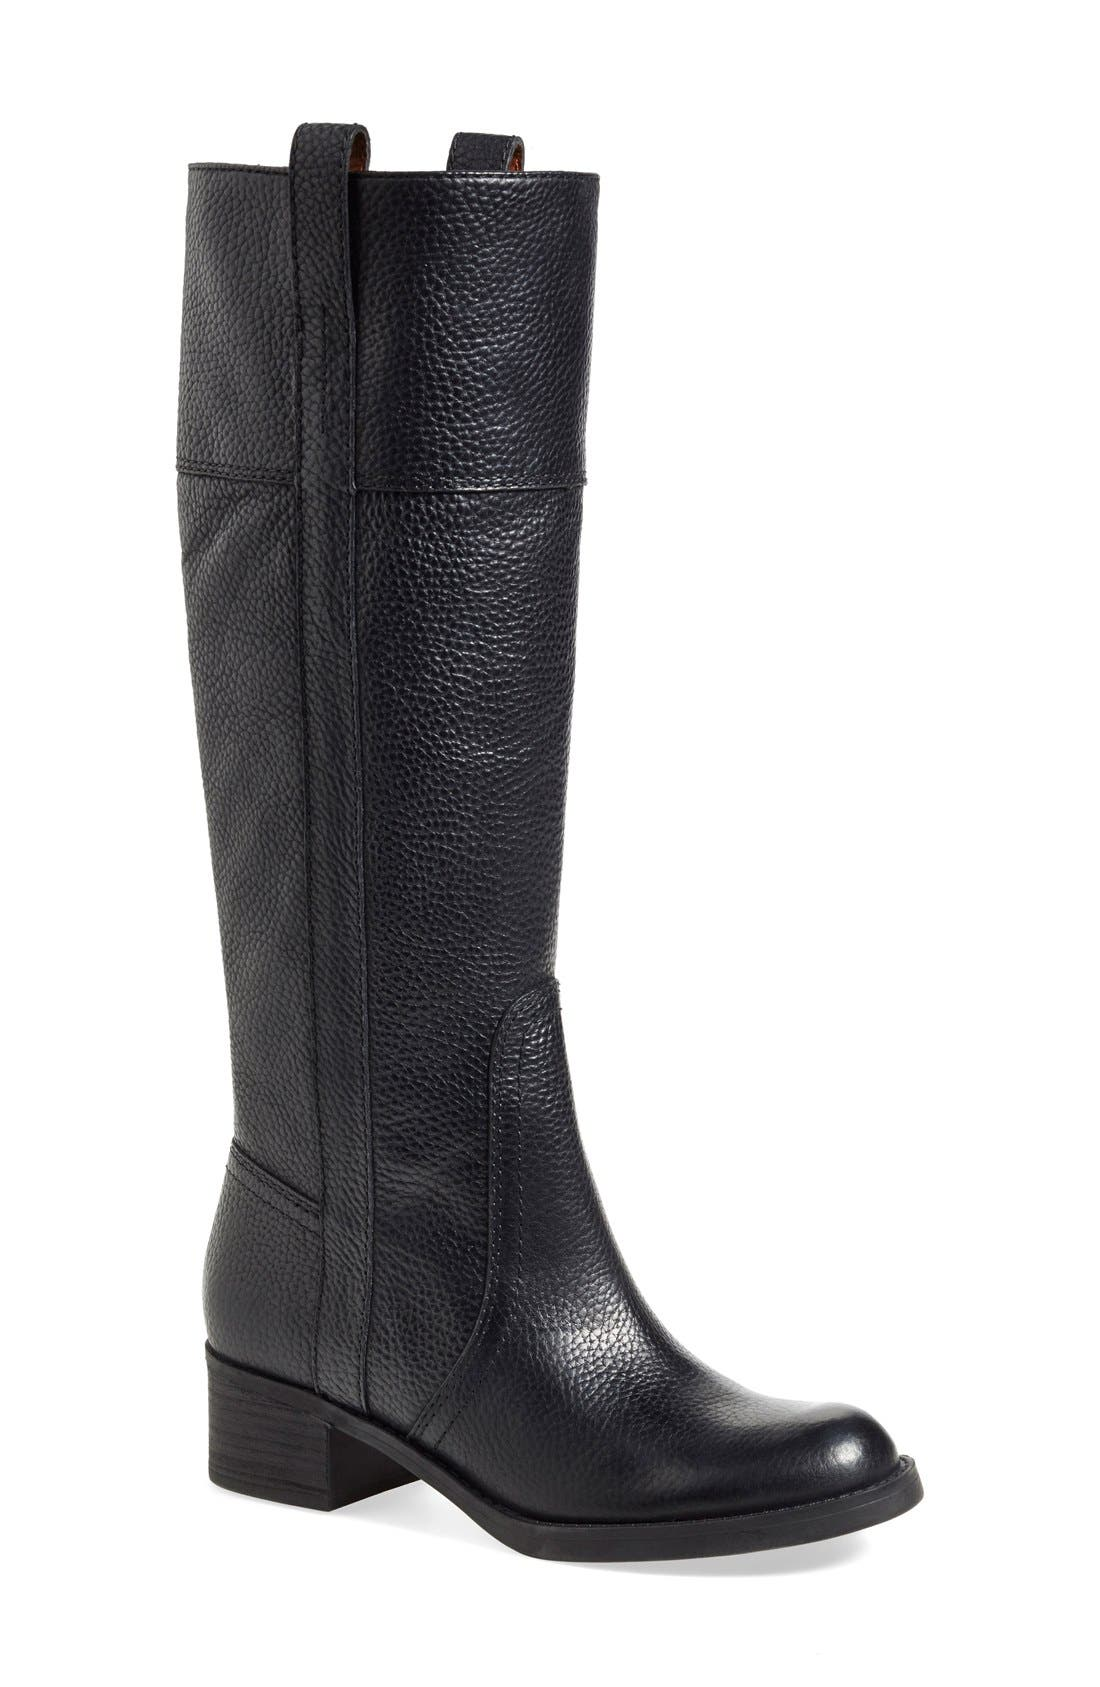 LUCKY BRAND 'Heloisse' Boot, Main, color, 001